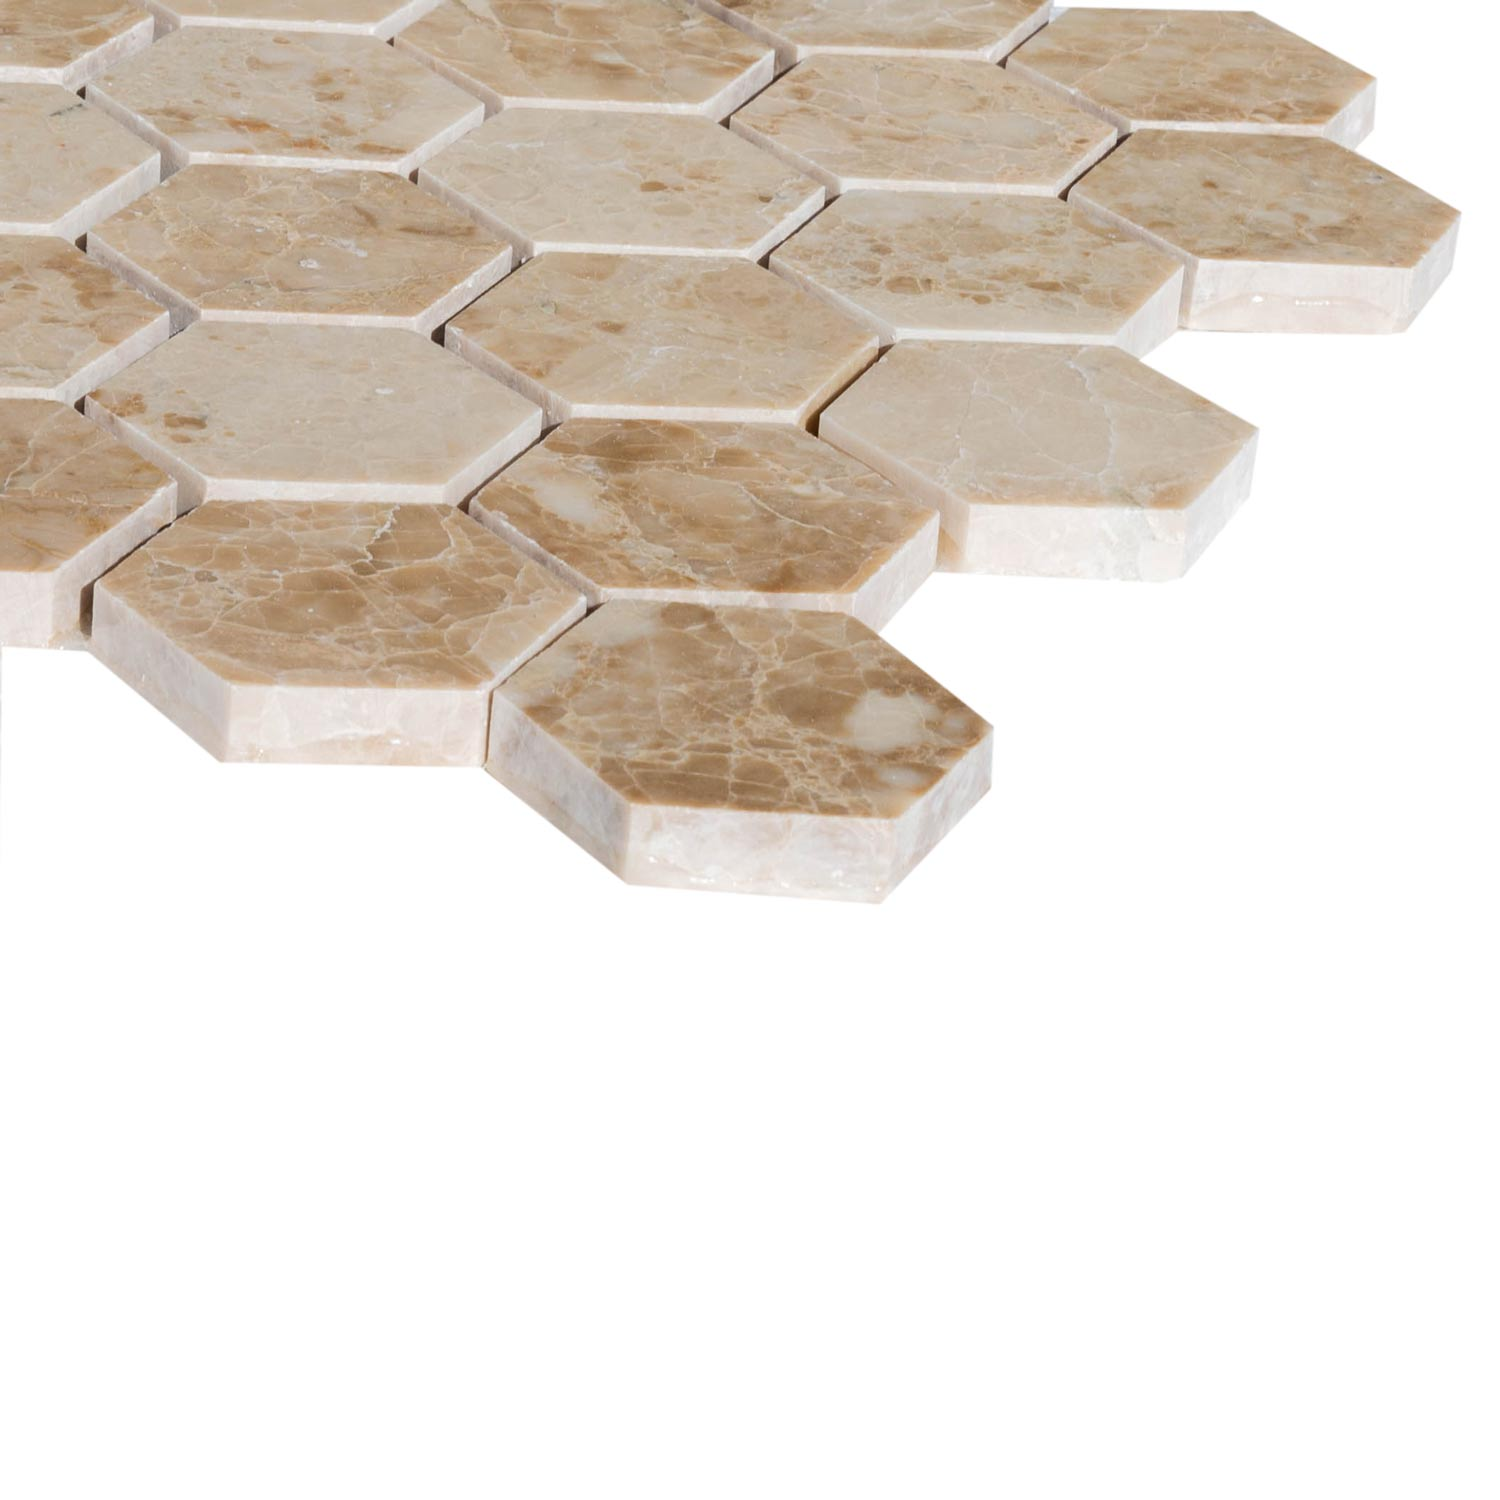 20020069-cappuccino-marble-mosaics-polished-2-hexagon-close-angle-profile-view-www.mayausatile